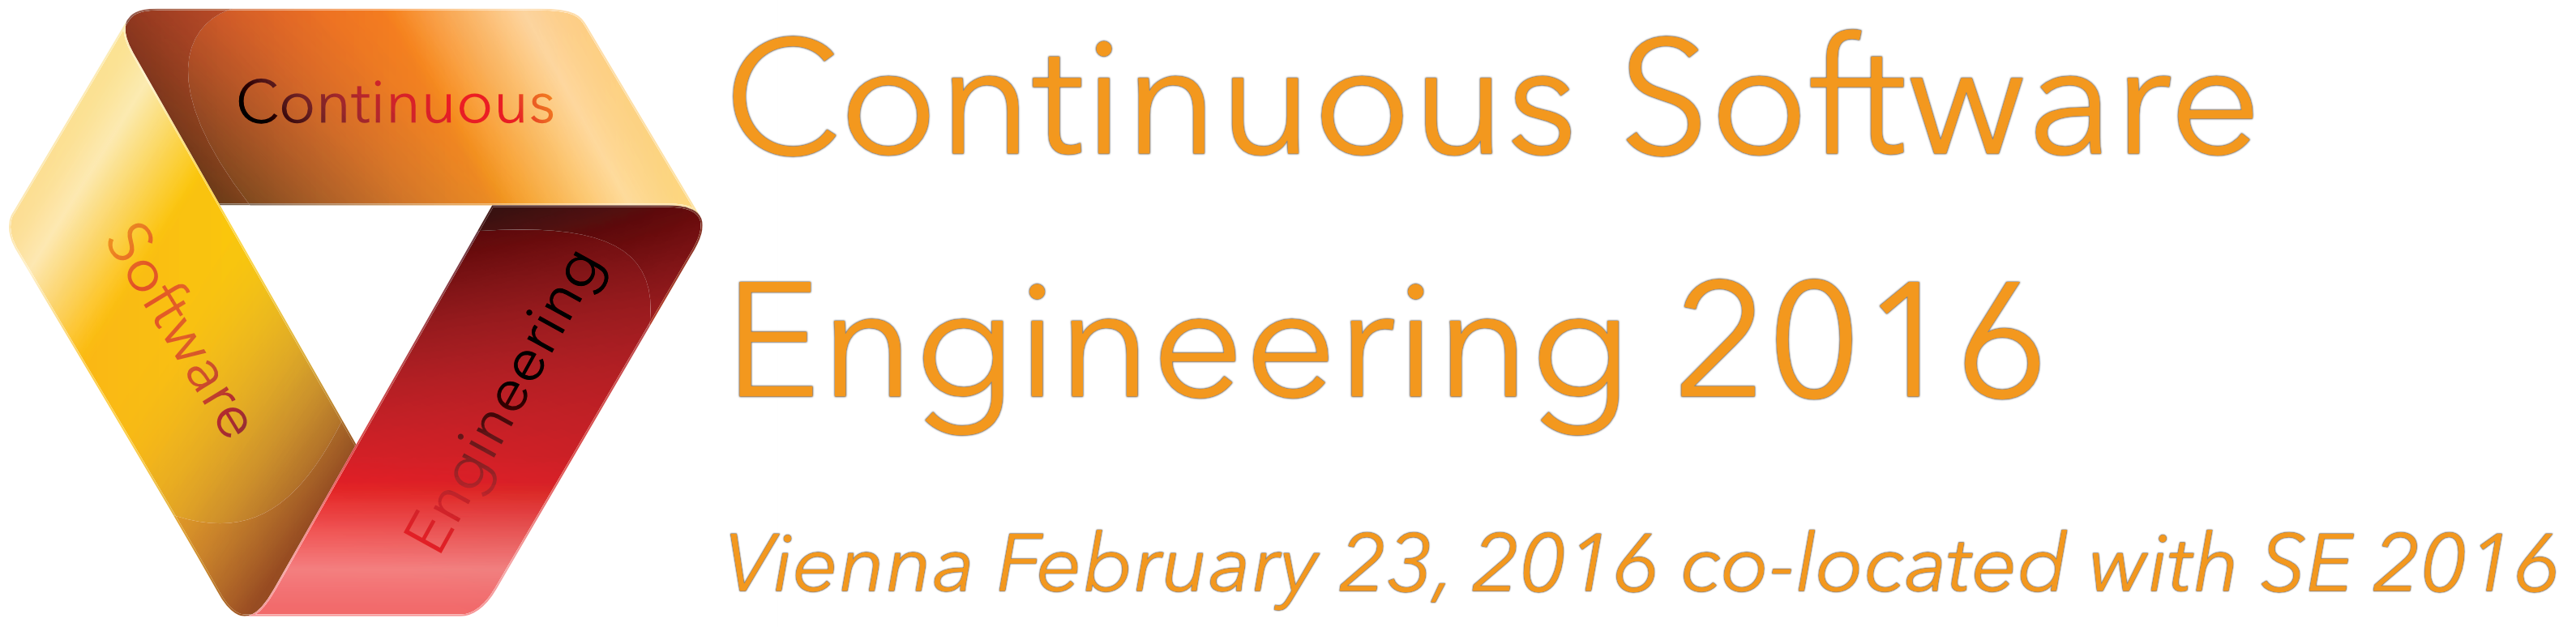 Continuous Software Engineering 2016